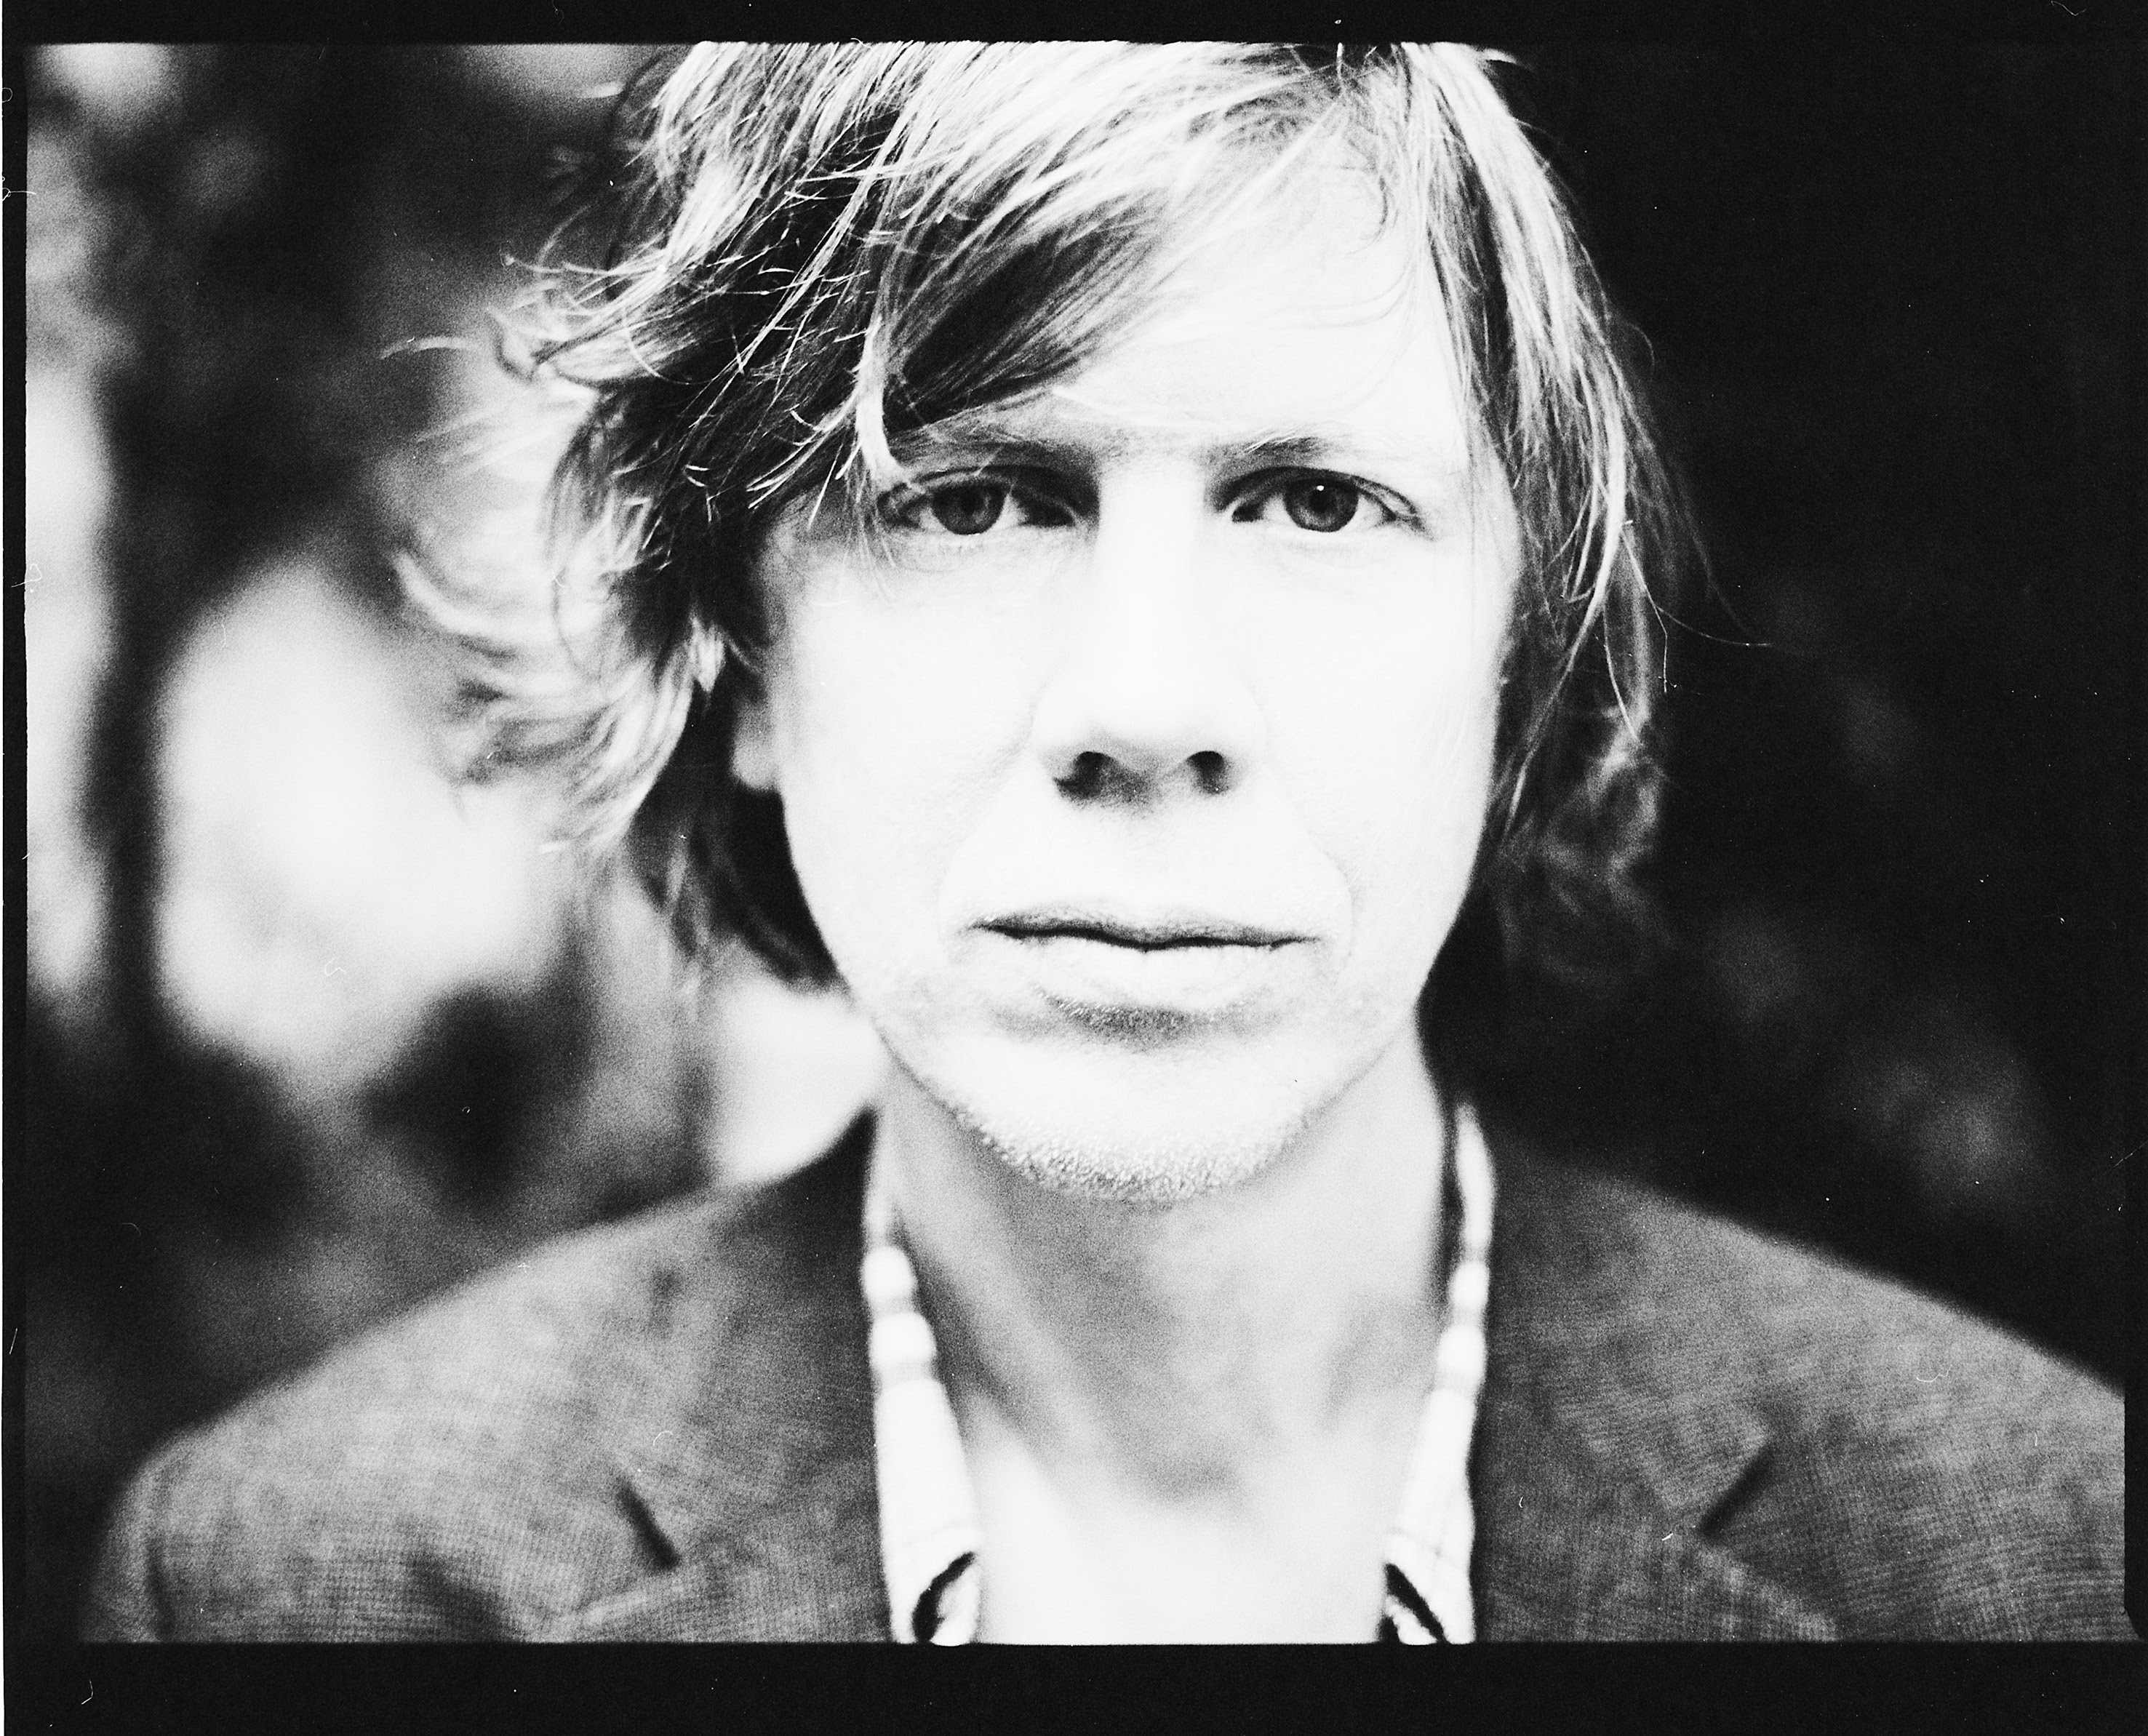 Thurston Moore on New LP, 2020 Election, Meeting Our Publication's Founder